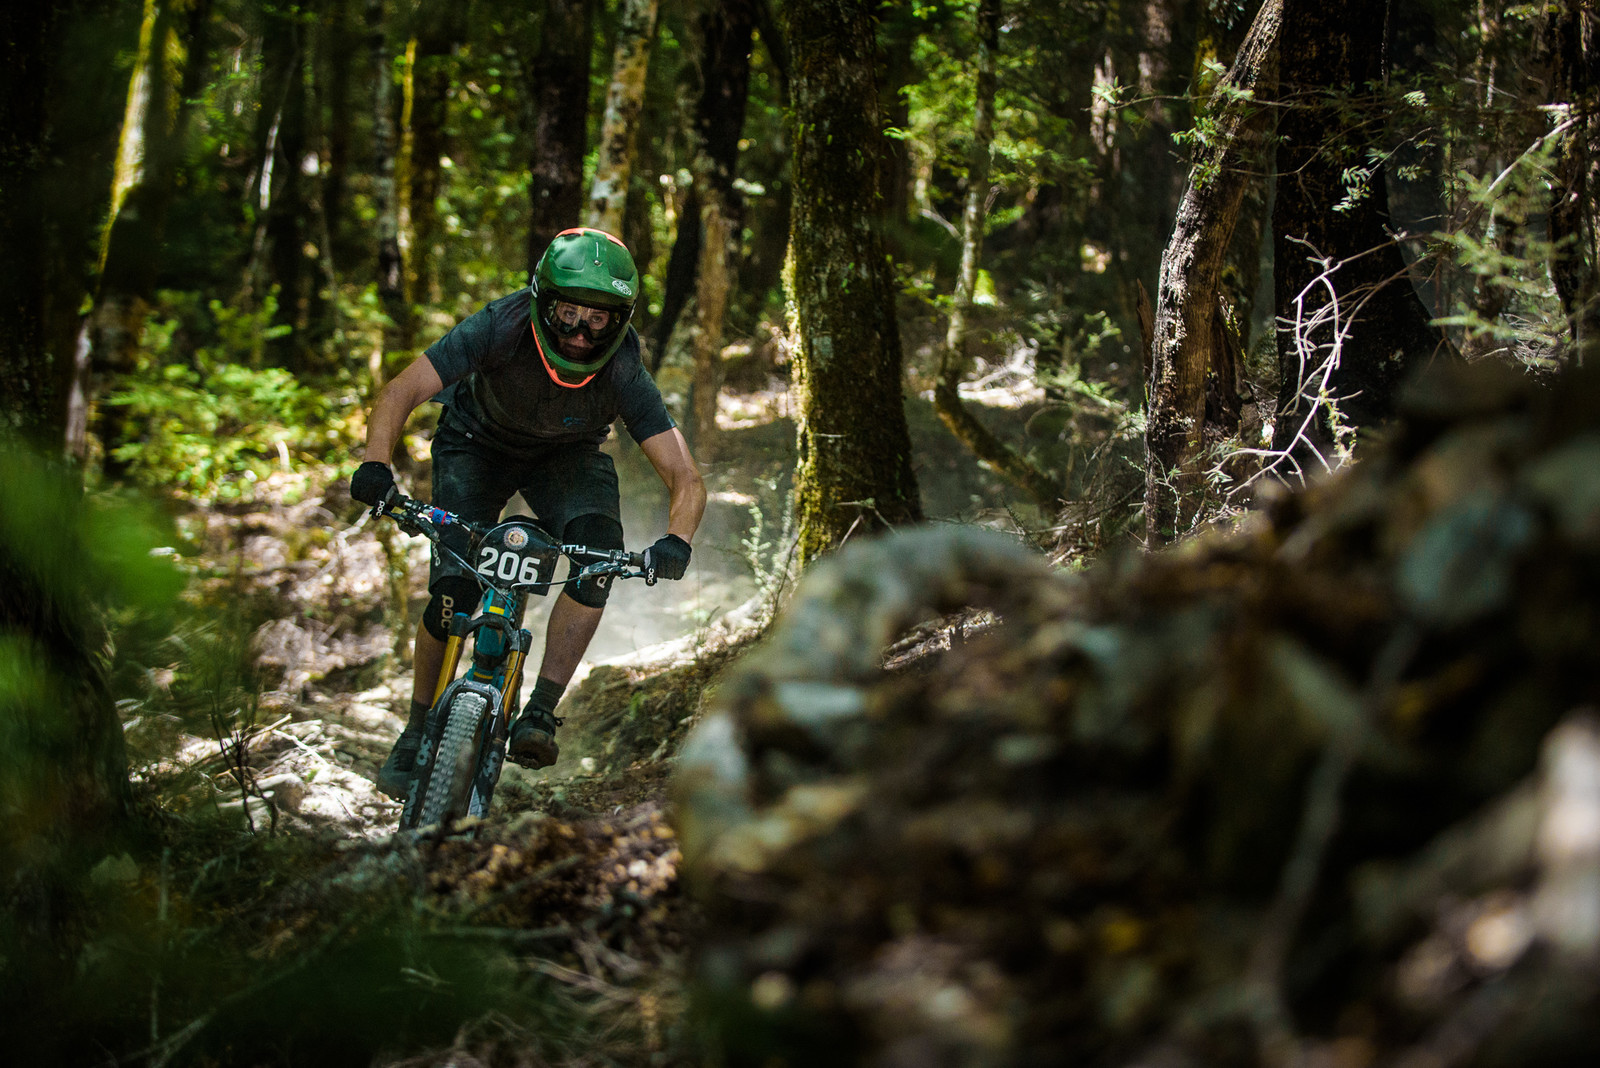 Charlie Murray - 2019 Dodzy Memorial Enduro - Mountain Biking Pictures - Vital MTB